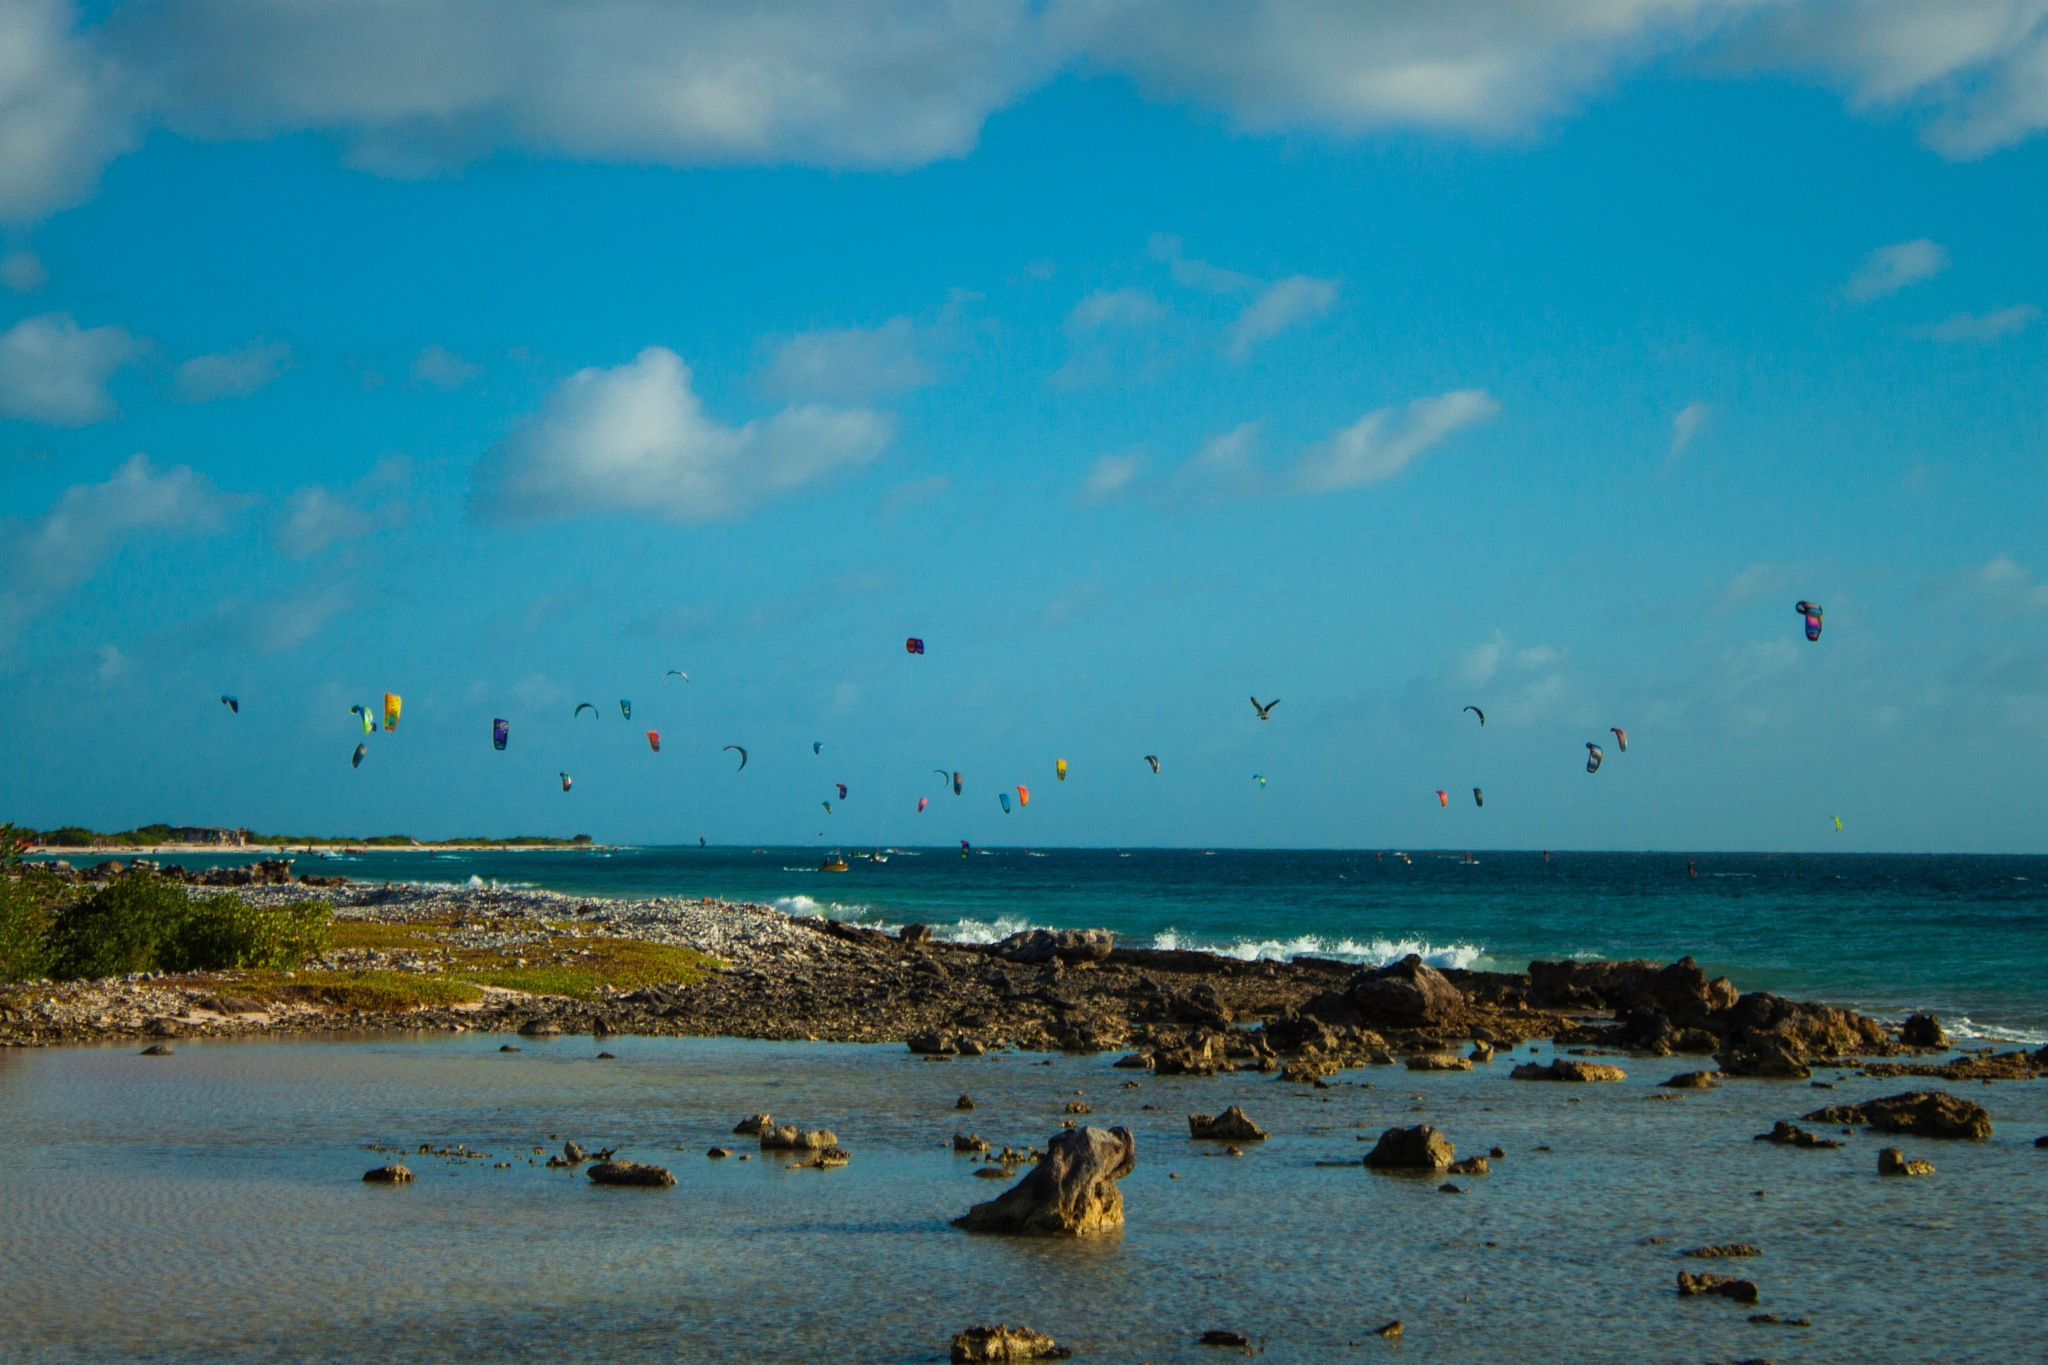 Kite Surfers by Dimphy Deitmers